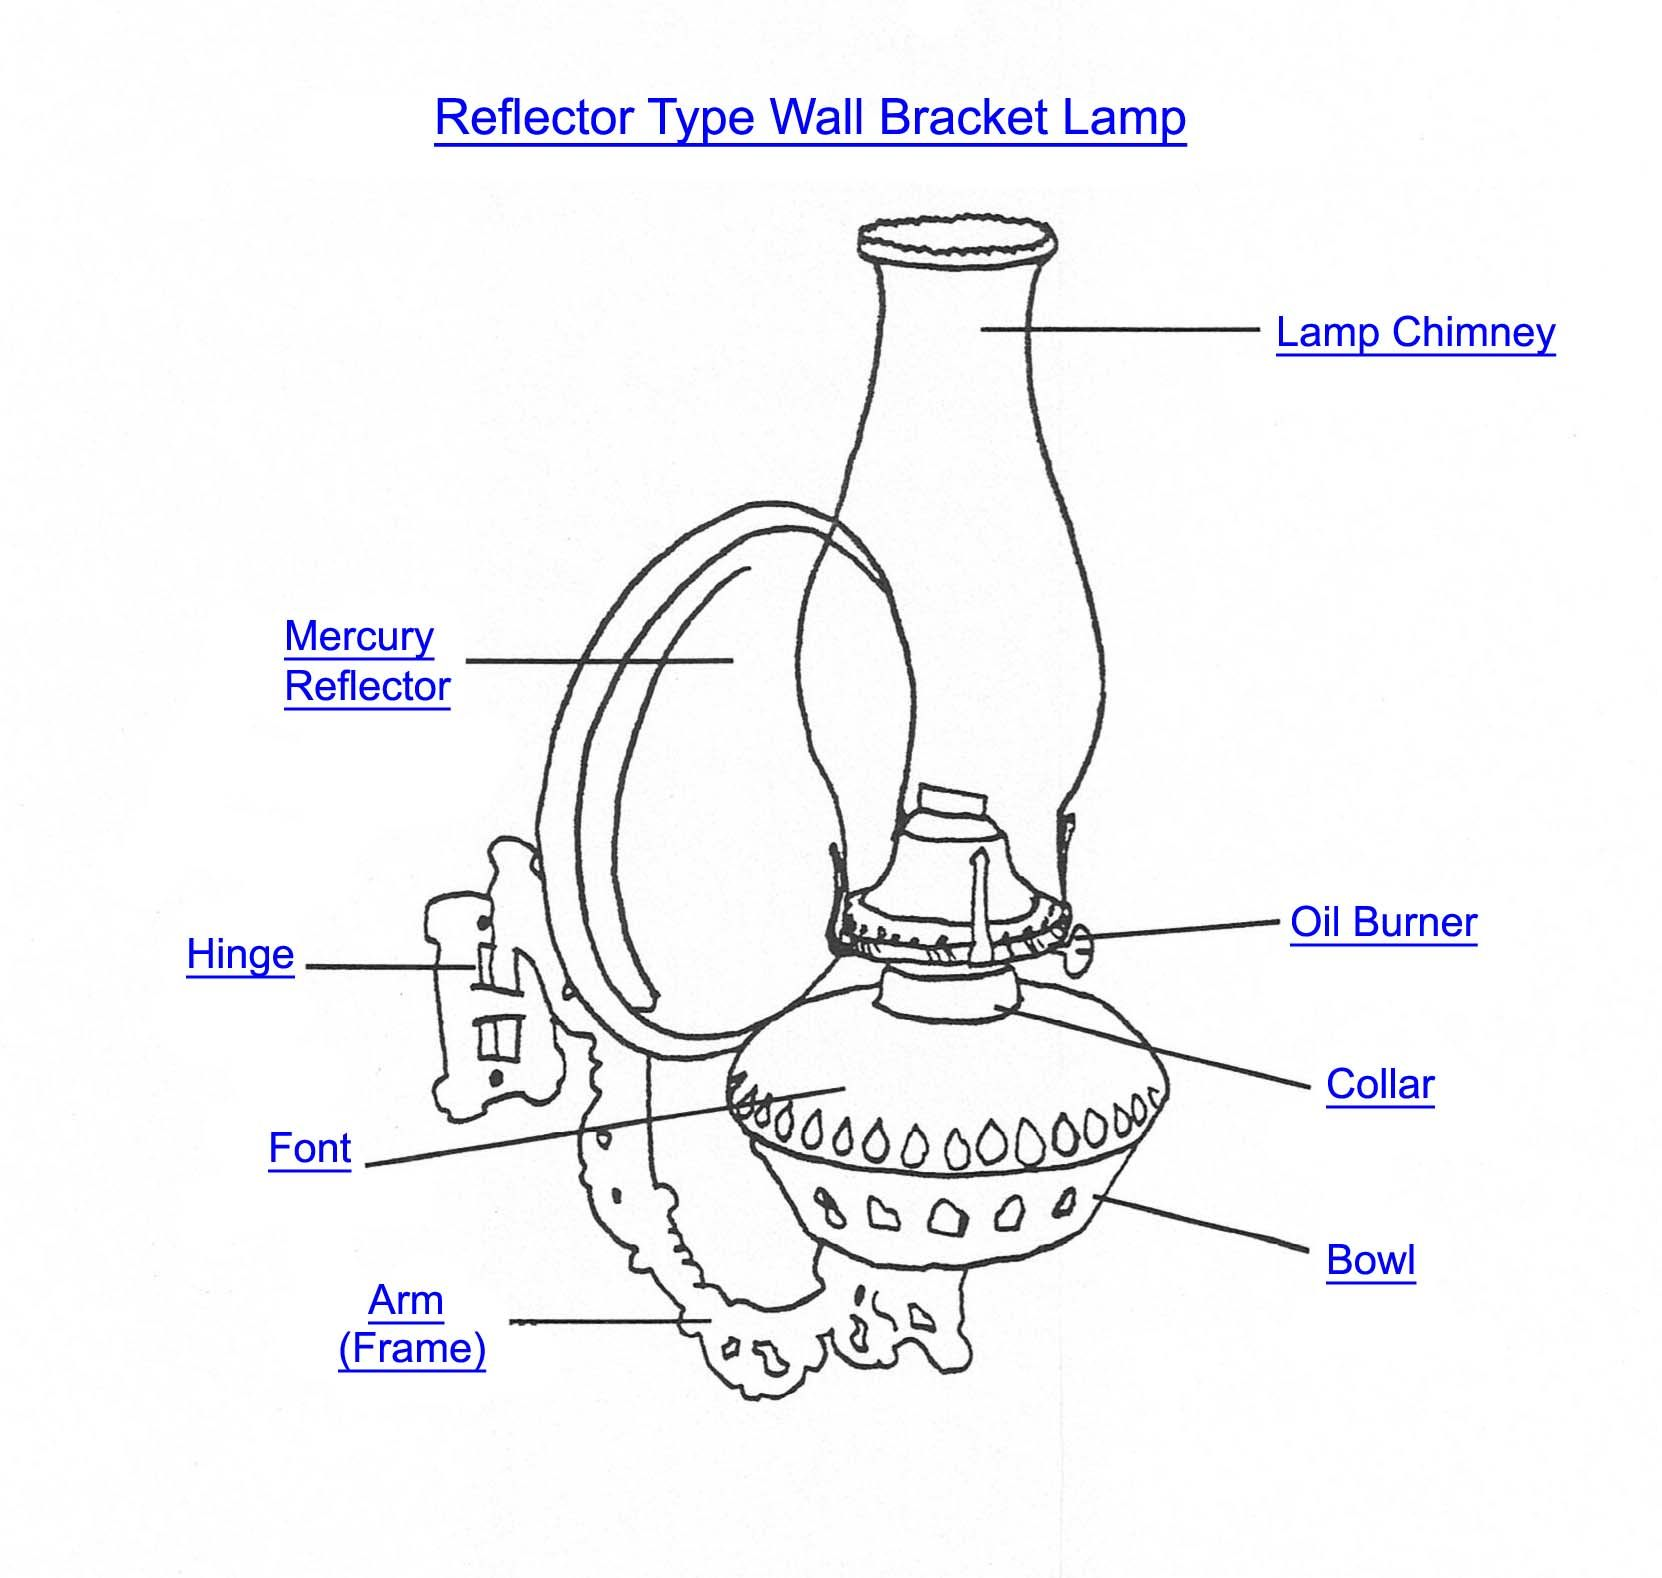 Check Out Https://lampclinic.com/ For The Best Lighting Fixtures And